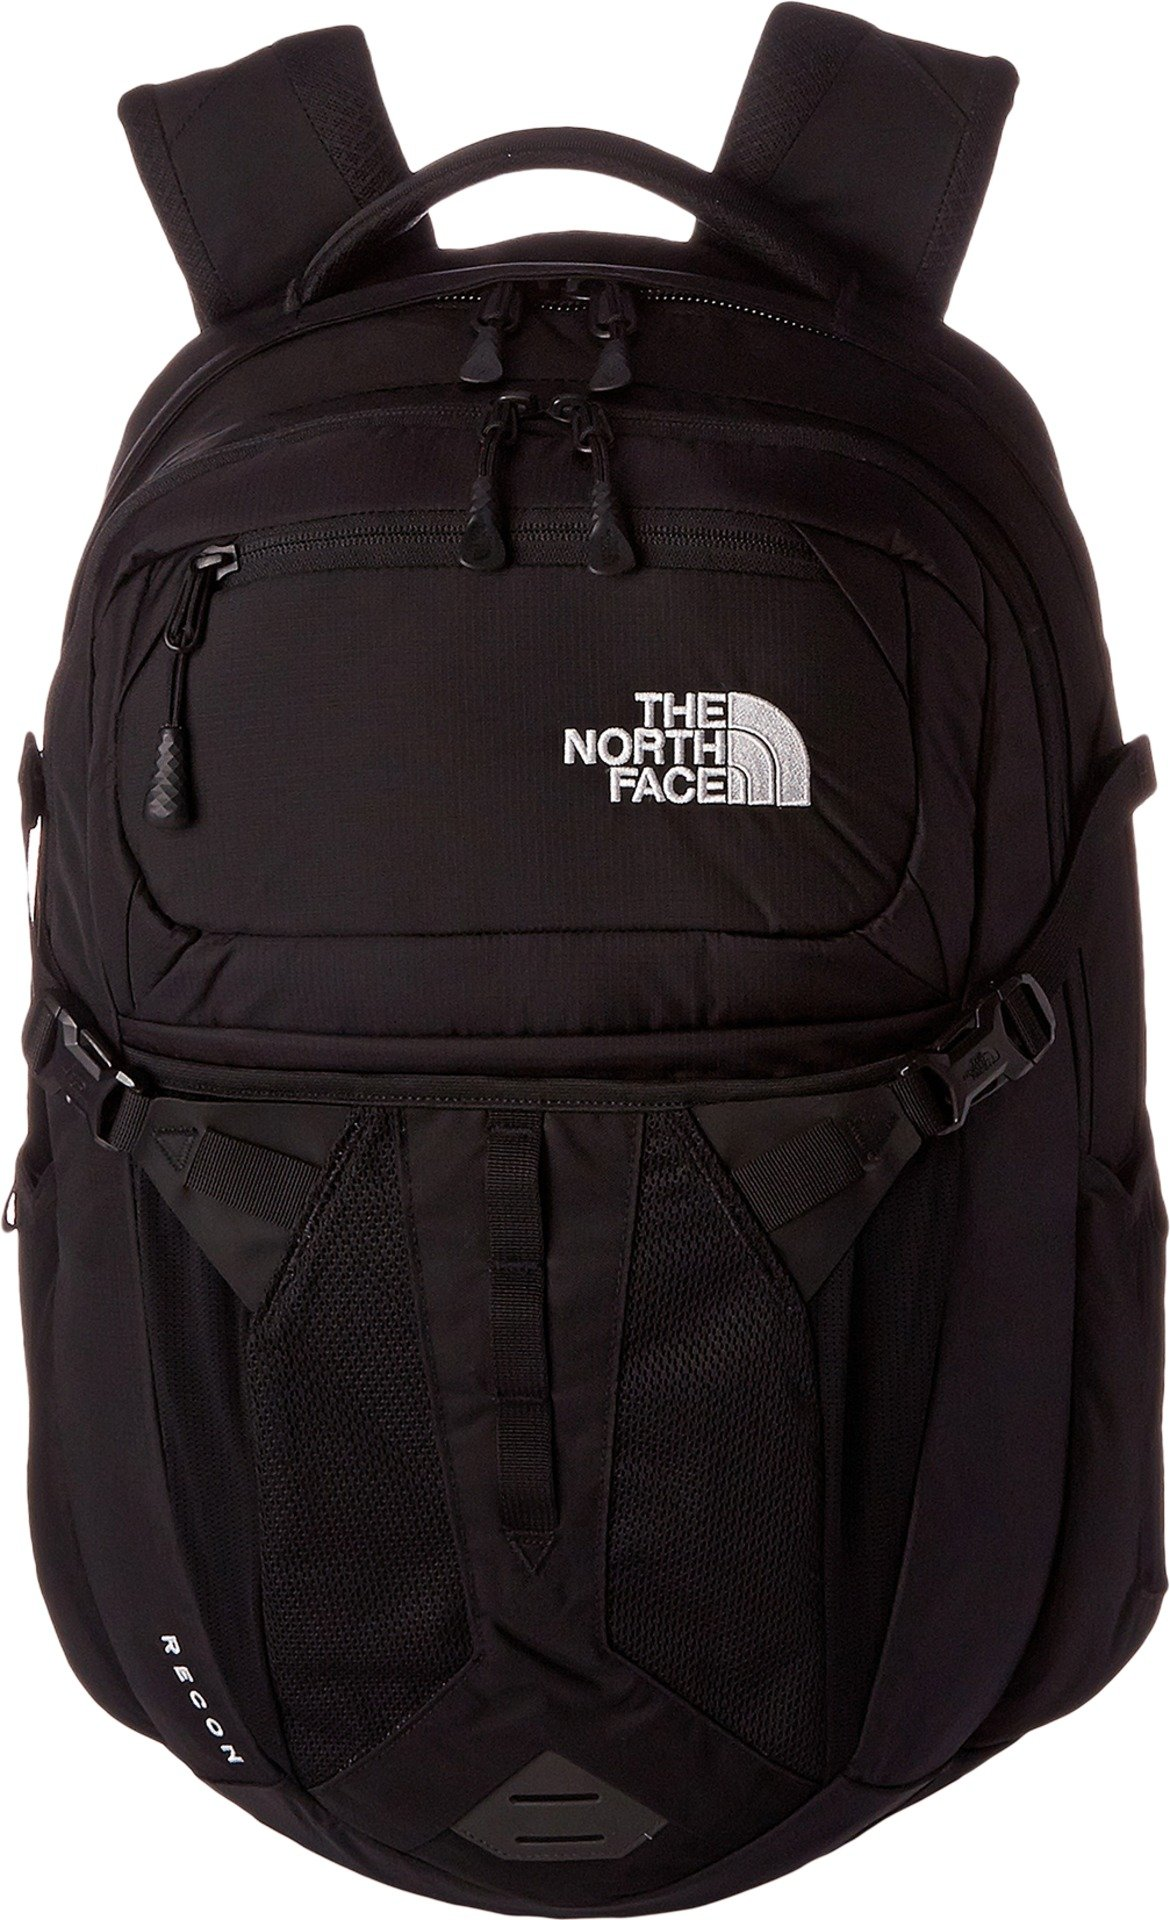 The North Face Recon TNF Black One Size by The North Face